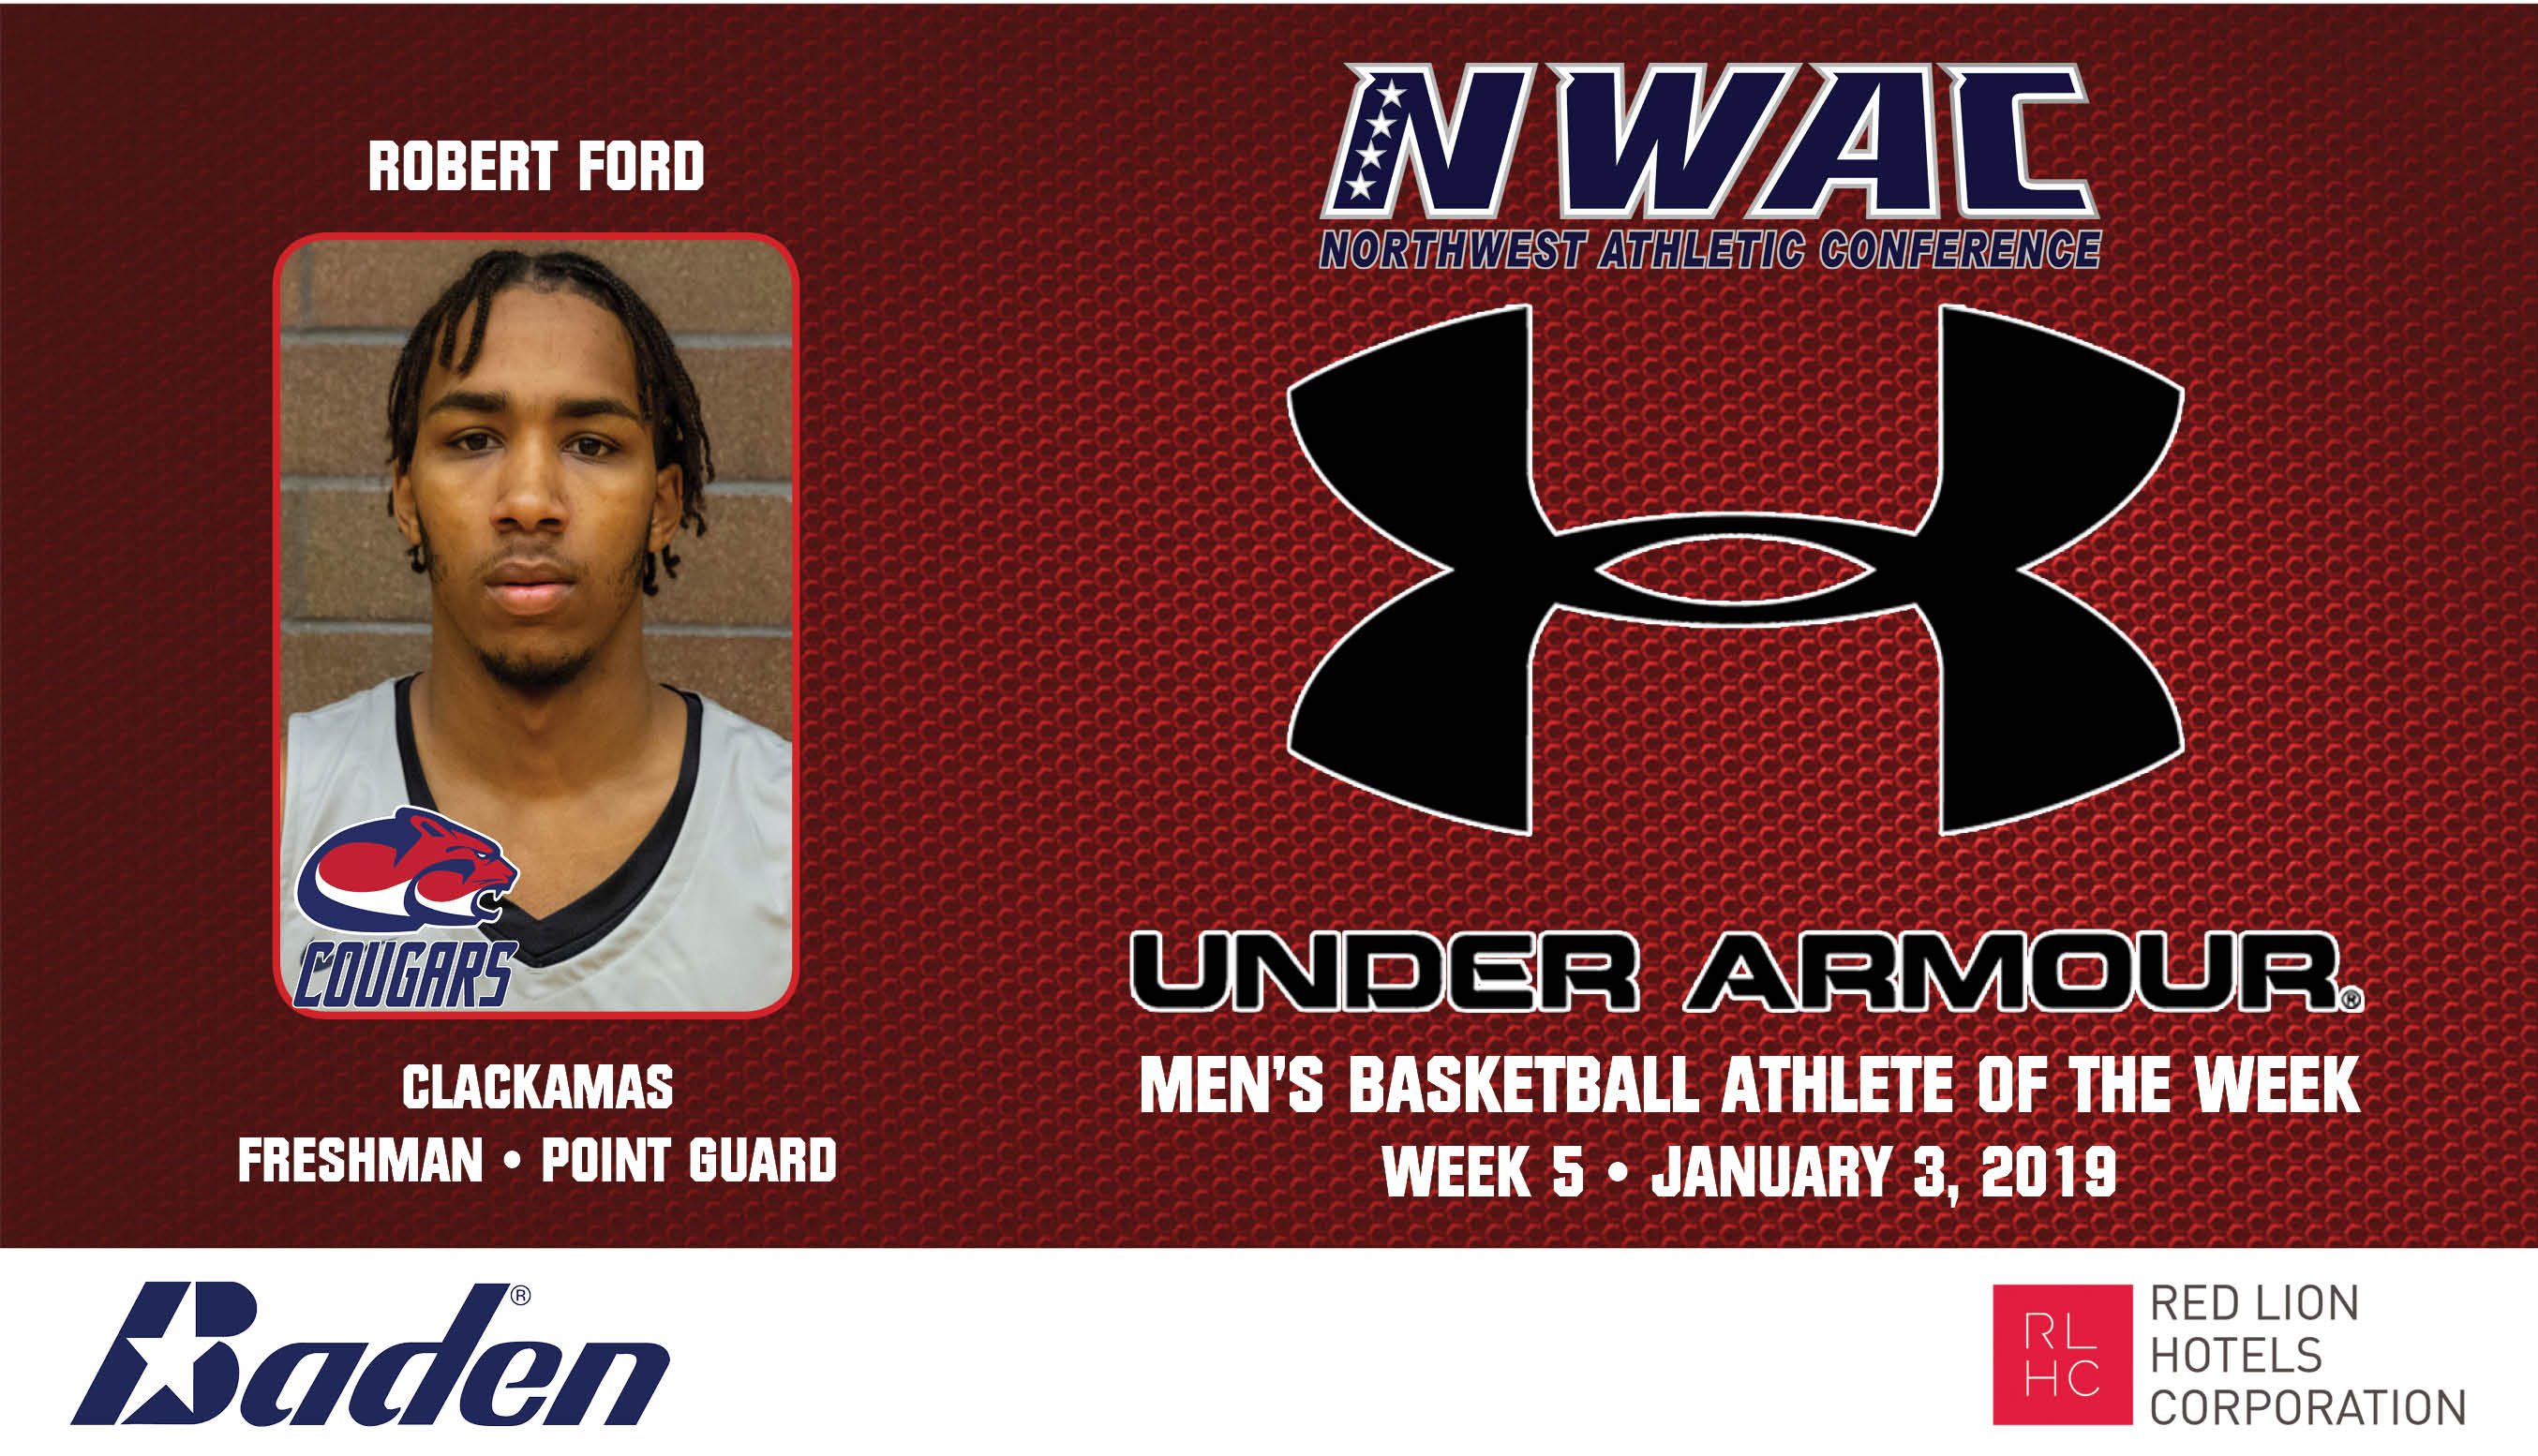 Robert Ford Under Armour photo